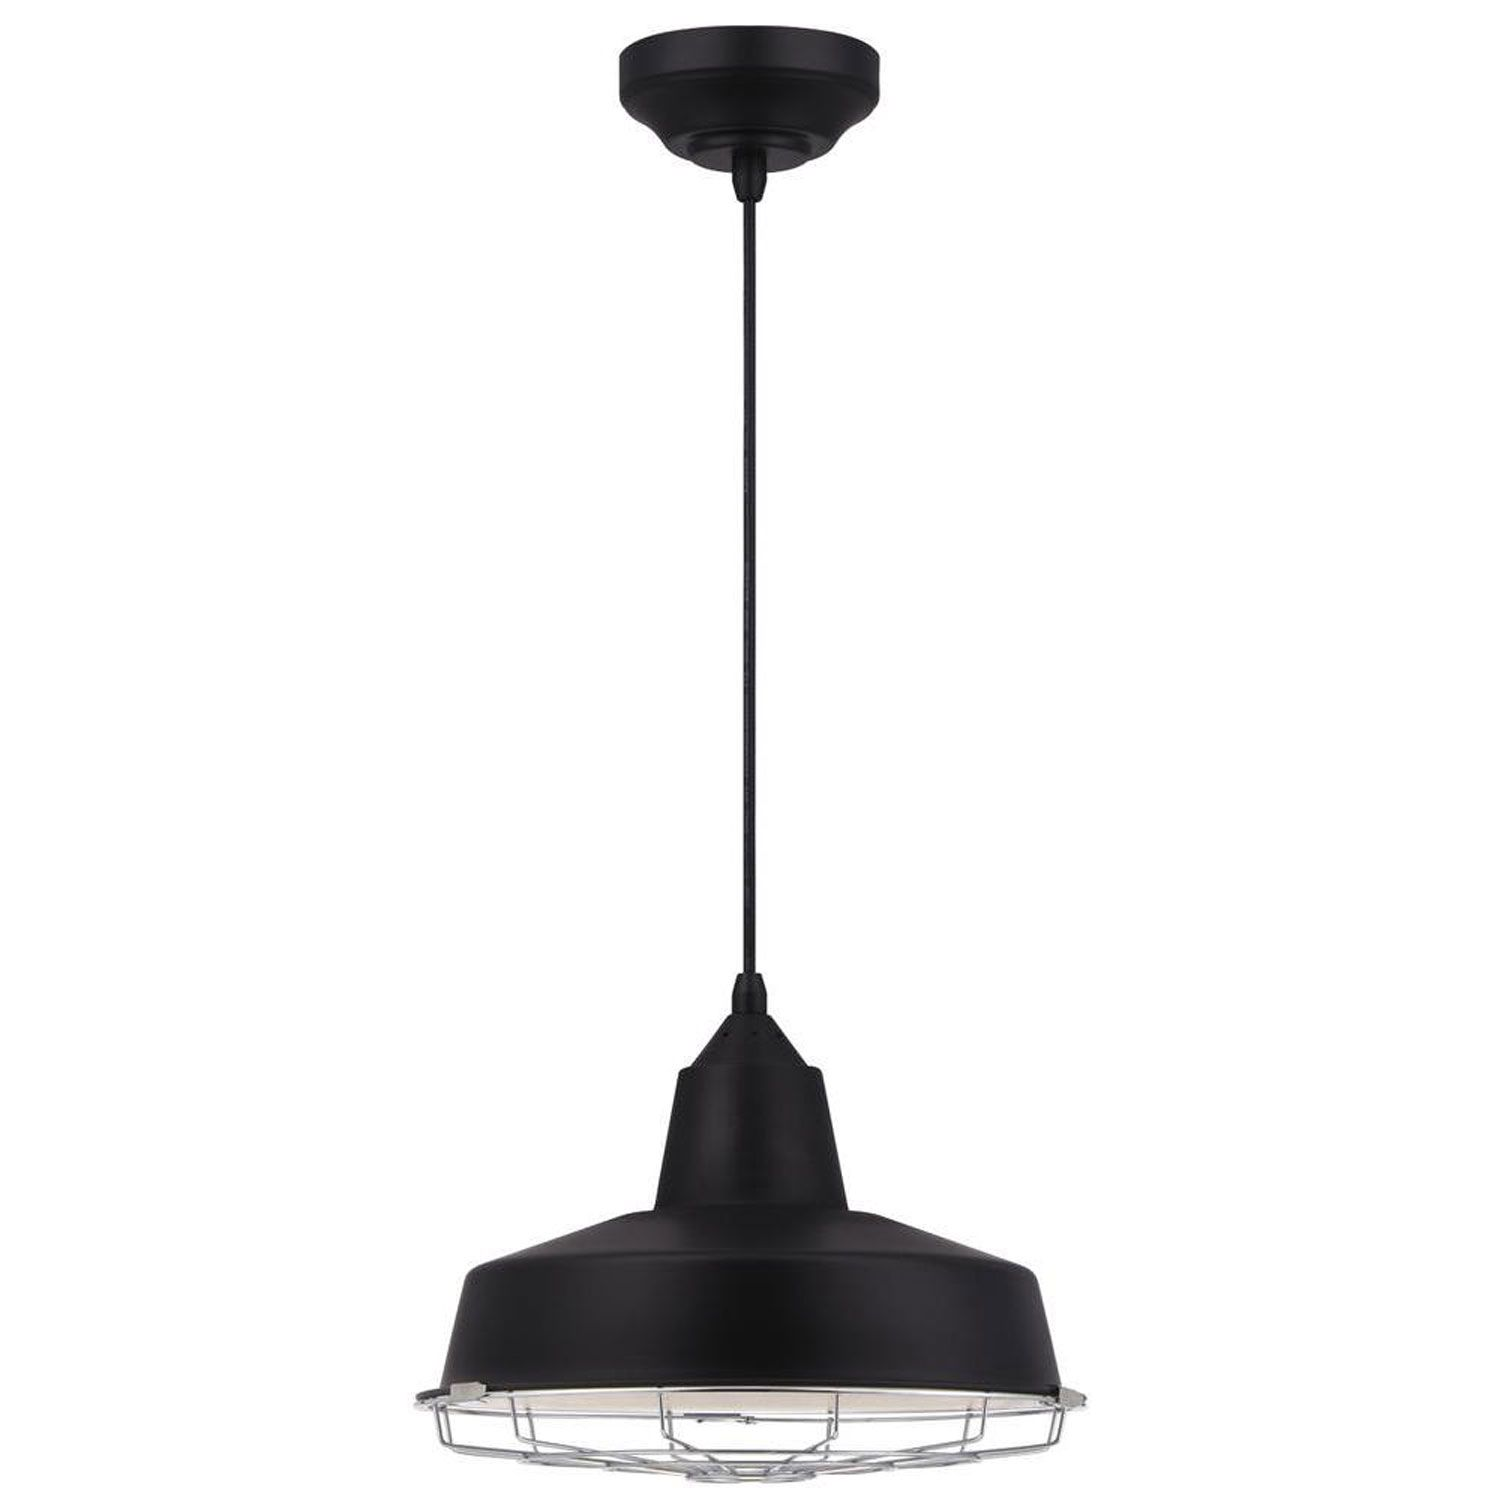 Black 12 Inch One Light Led Pendant Westinghouse Lighting Dome Pendant Lighting Ceiling Li Dome Pendant Lighting Pendant Lighting Pendant Light